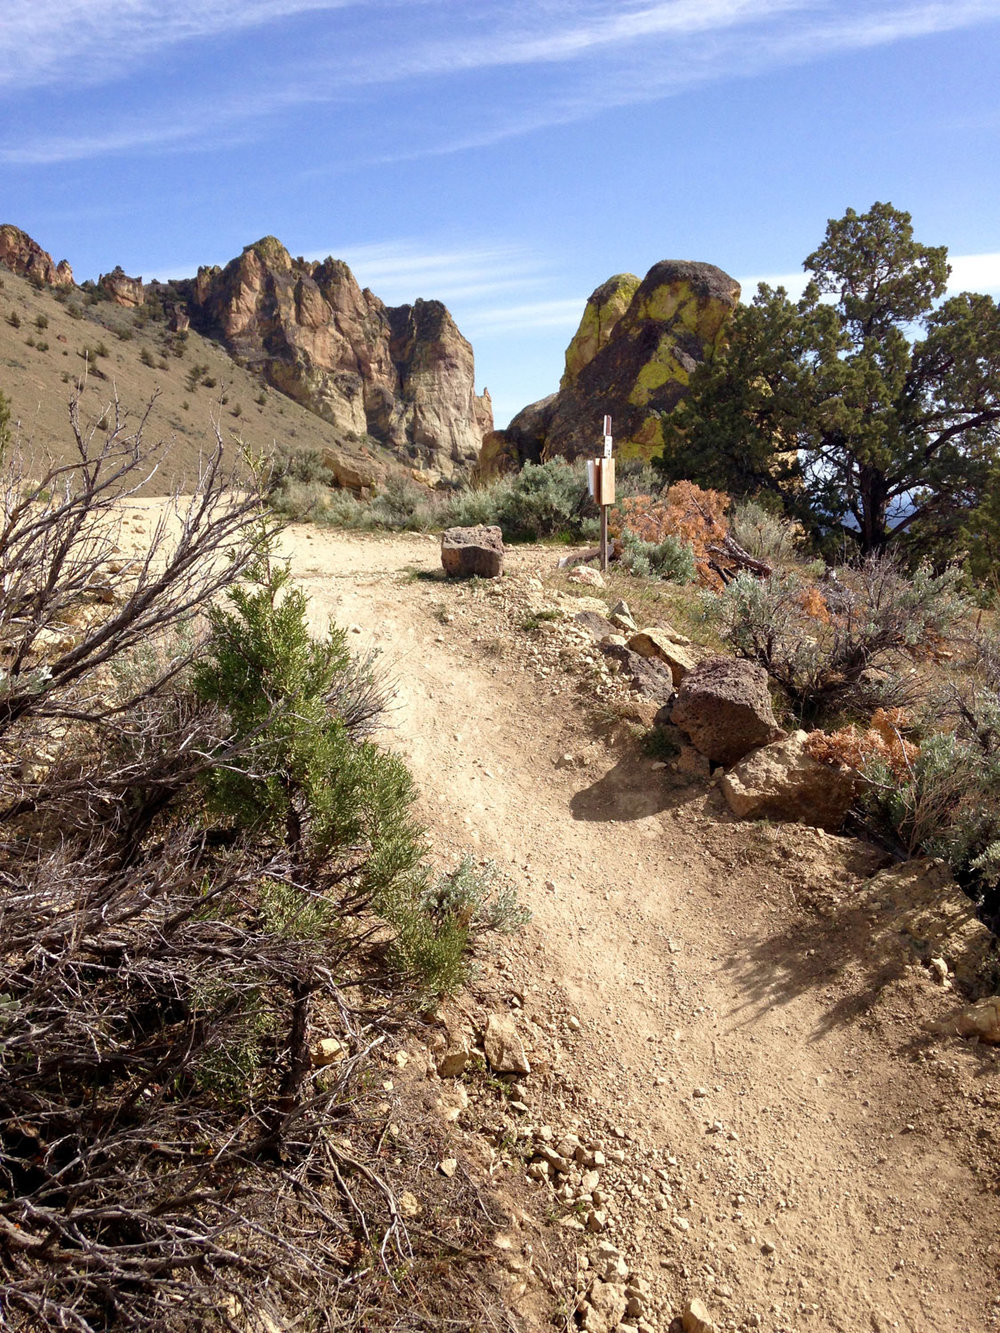 Finally the Summit Trail tops out at the summit of the Burma Road Trail. To do the Summit Trail Loop continue straight ahead and down the Burma Road back to Smith Rock State Park.